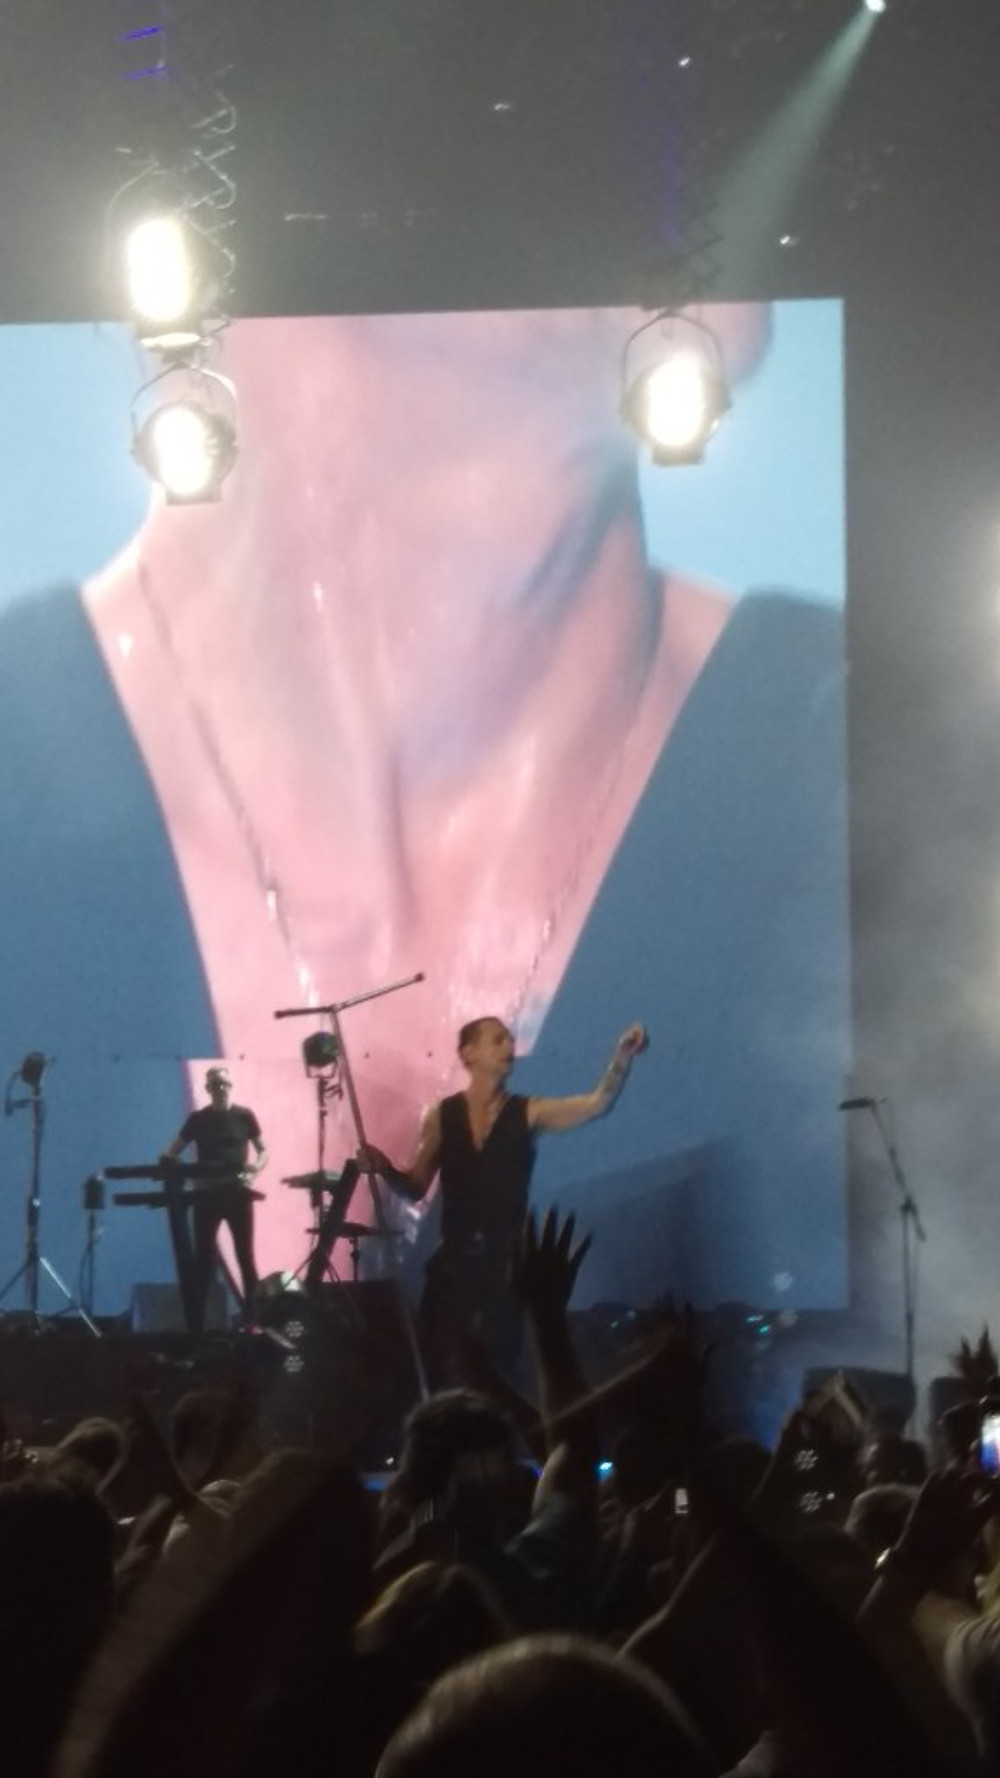 Dave Gahan of Depeche Mode performing on stage.